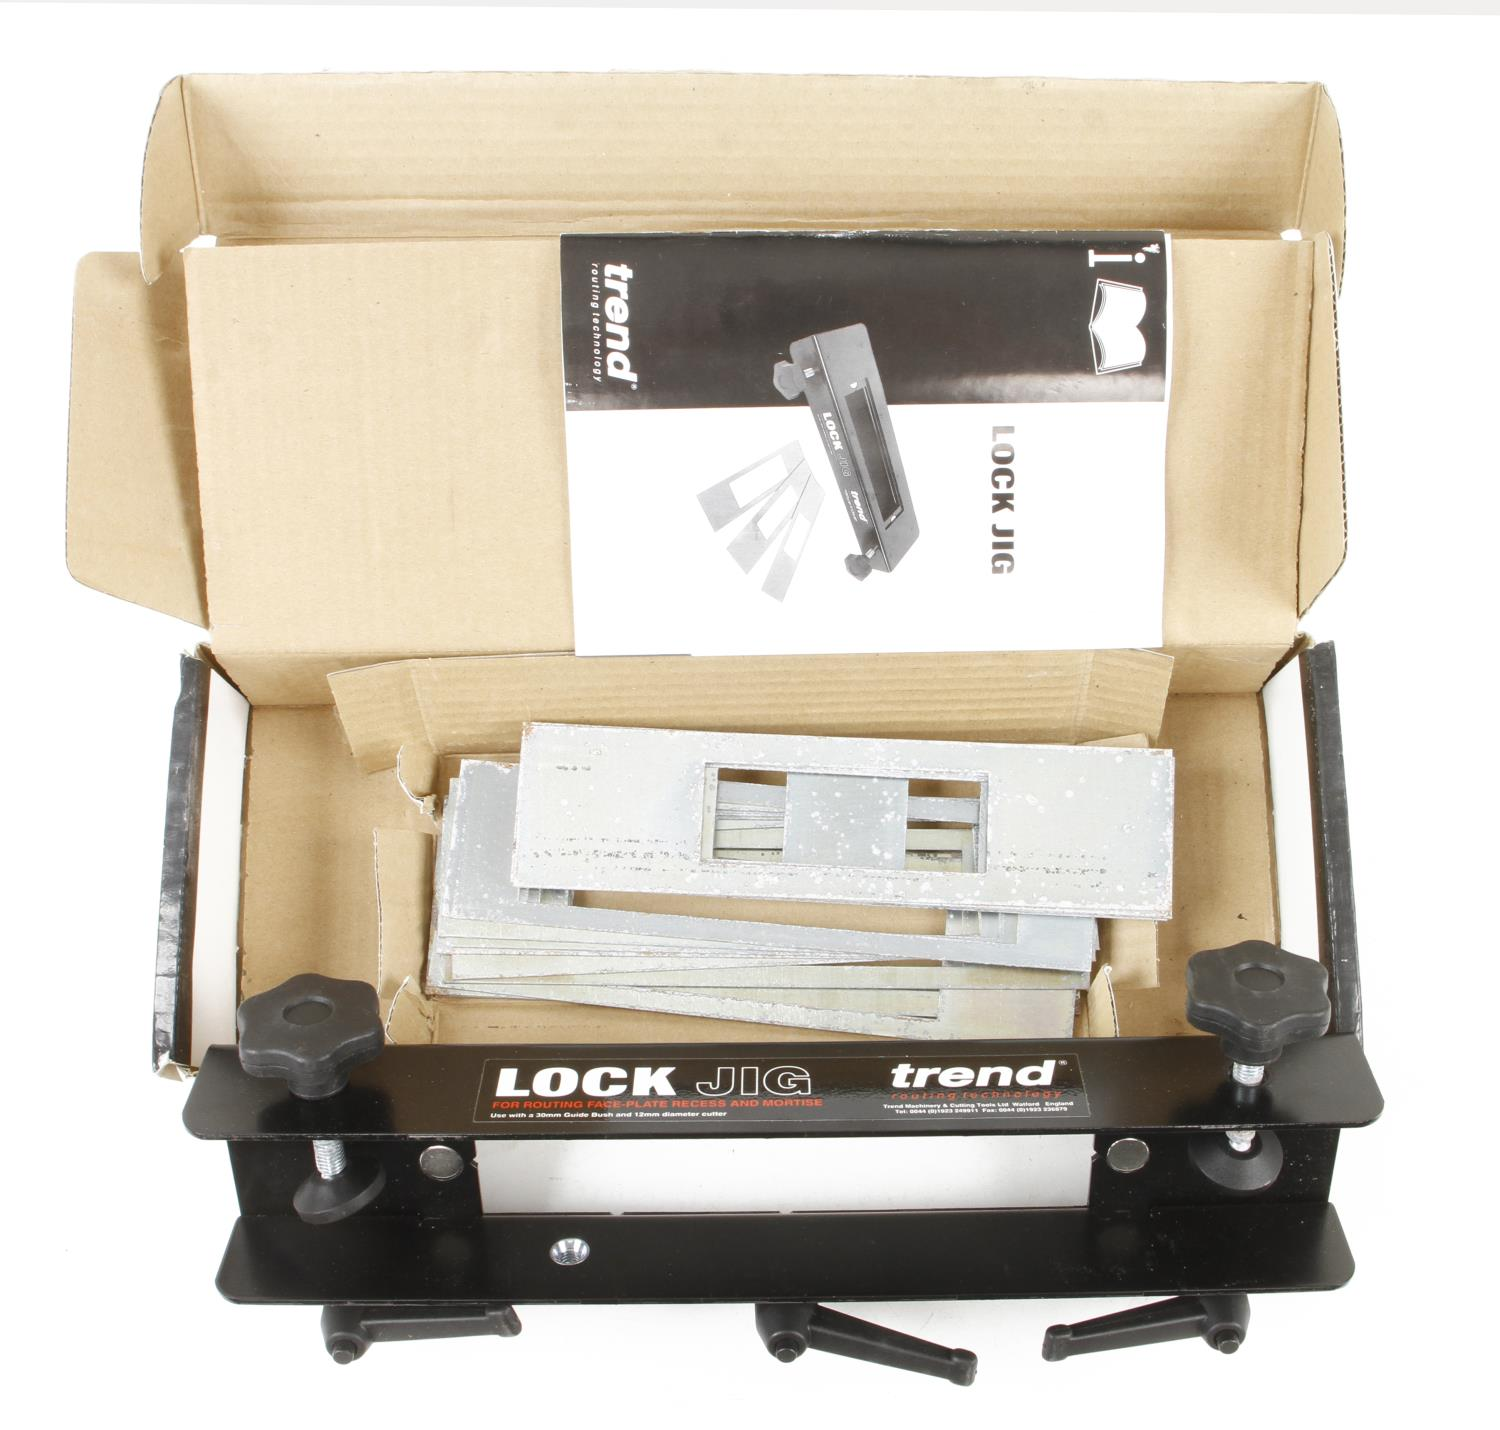 A TREND lock jig for routing face plate and mortice for most popular doors in orig box G++